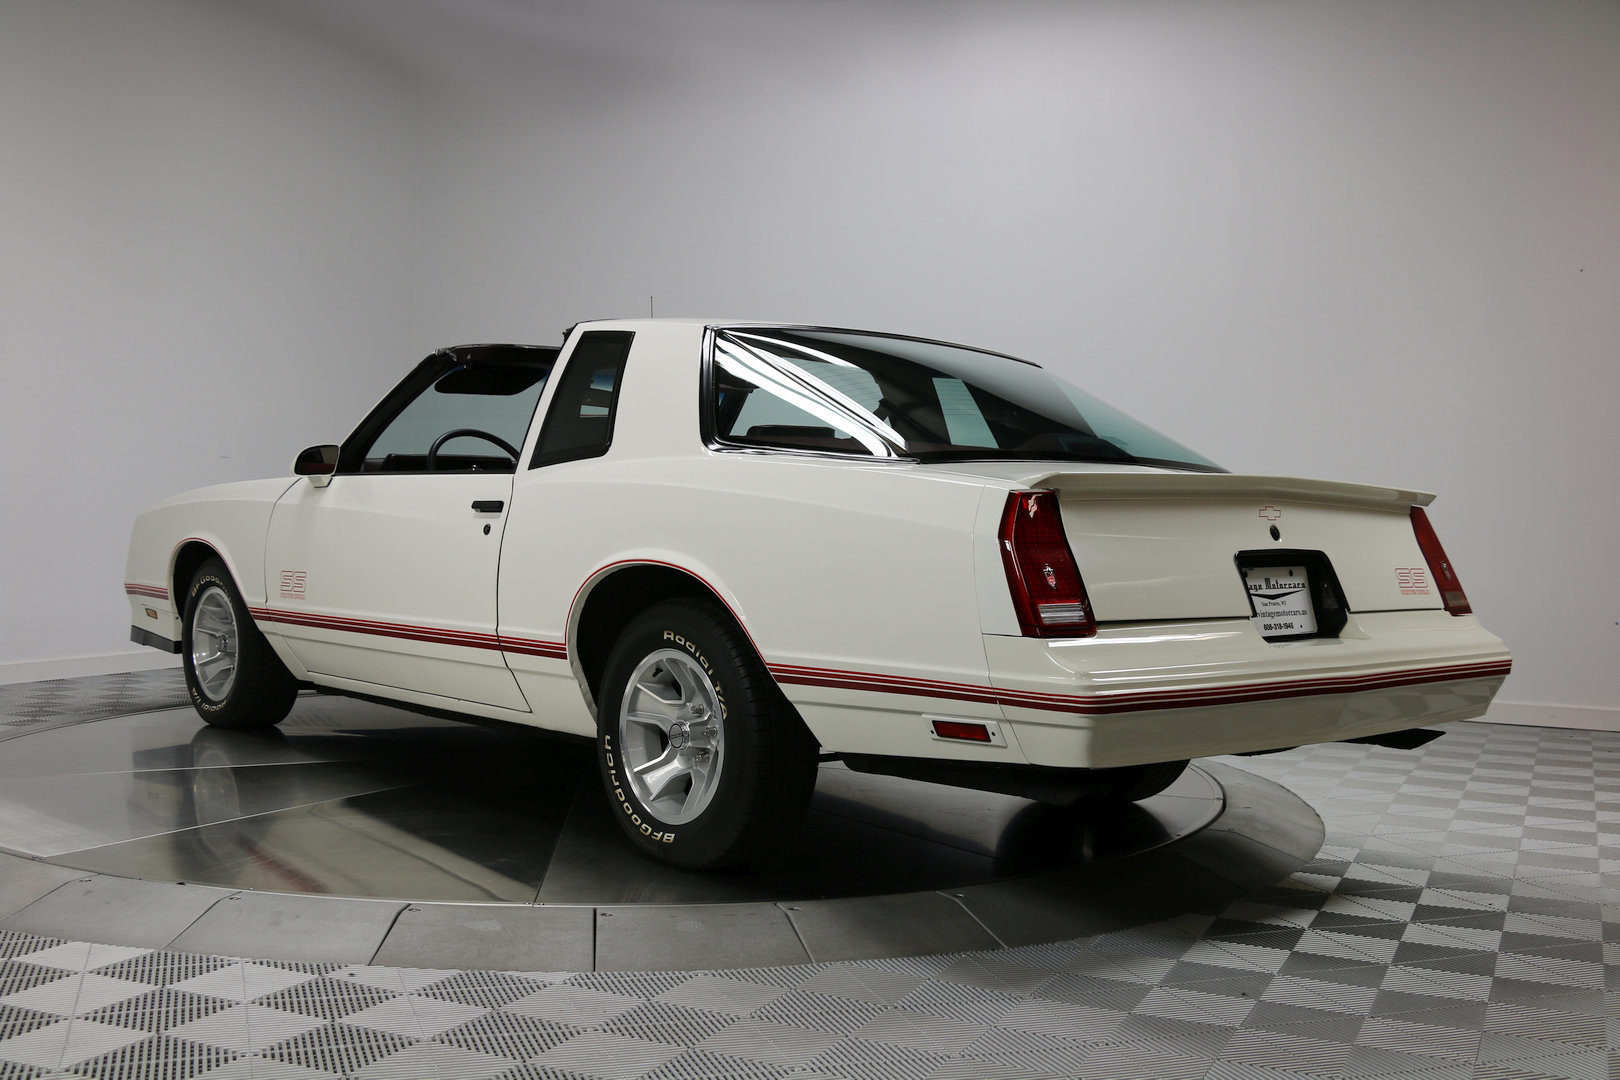 1987 chevrolet monte carlo ss aero coupe vintage motorcars. Black Bedroom Furniture Sets. Home Design Ideas